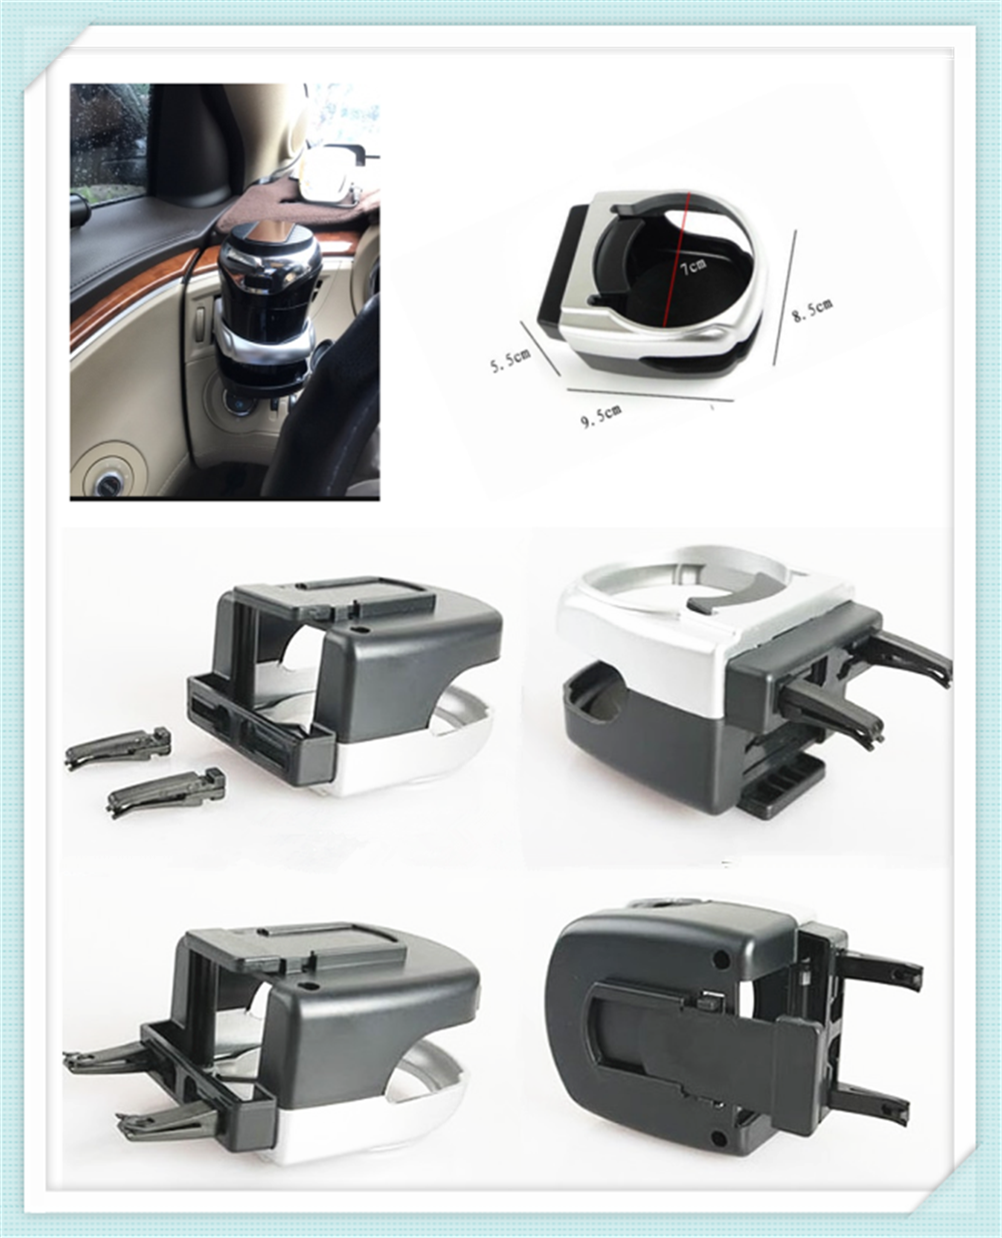 Auto parts conditioning air outlet coffee drink rack water cup holder for Nissan NV200 Nuvu NV2500 Forum Denki 350Z Zaroot image